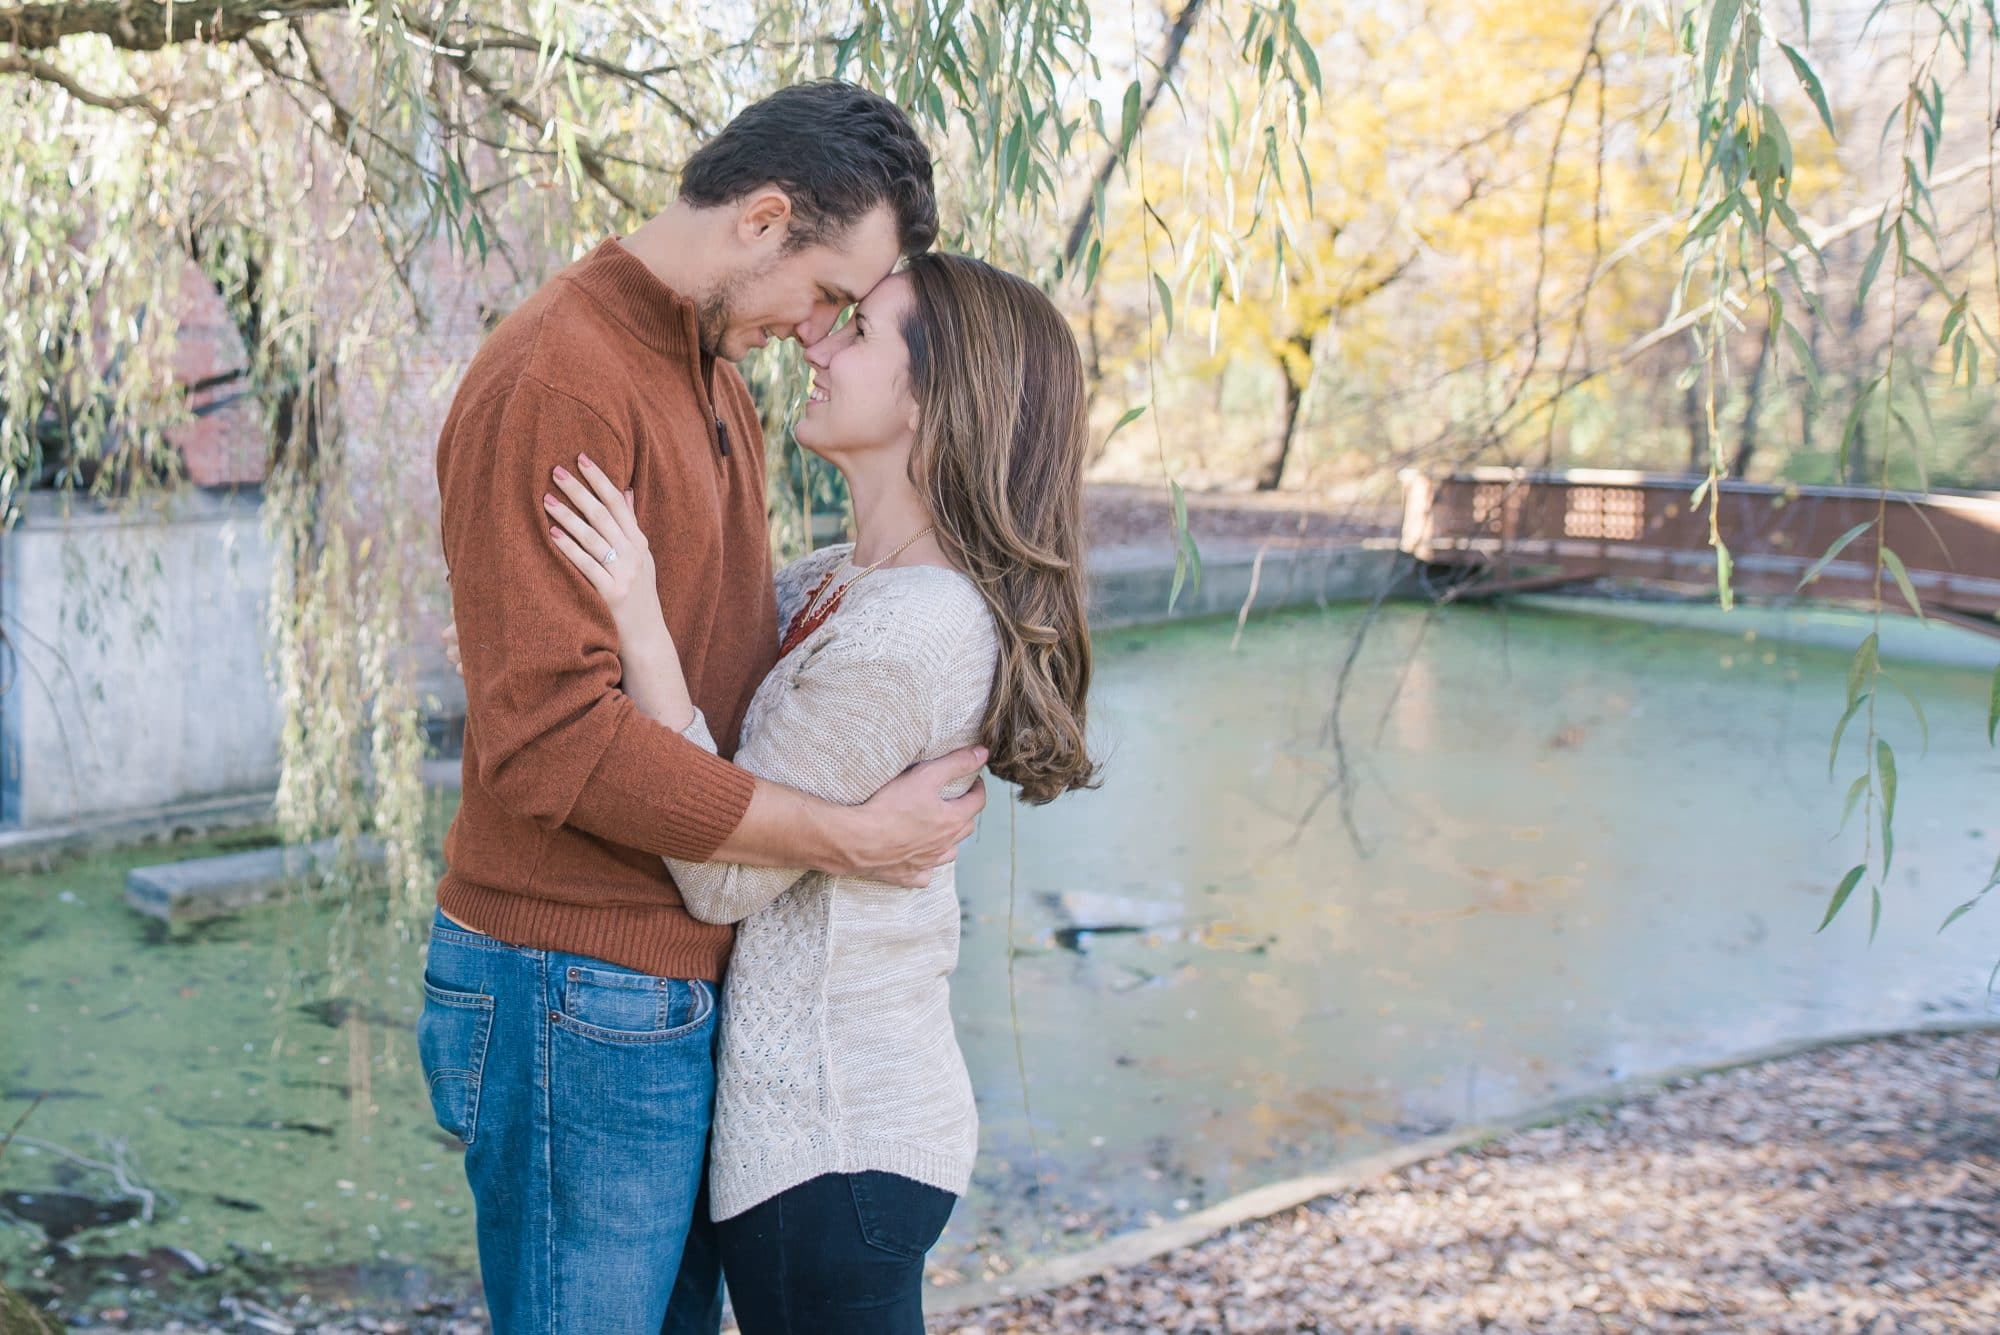 Fall Engagement Session in Hobart, Indiana | Luminant Photography | Declan and Sarah McCarron | Engagement Photos | Lafayette, Indiana Photographer